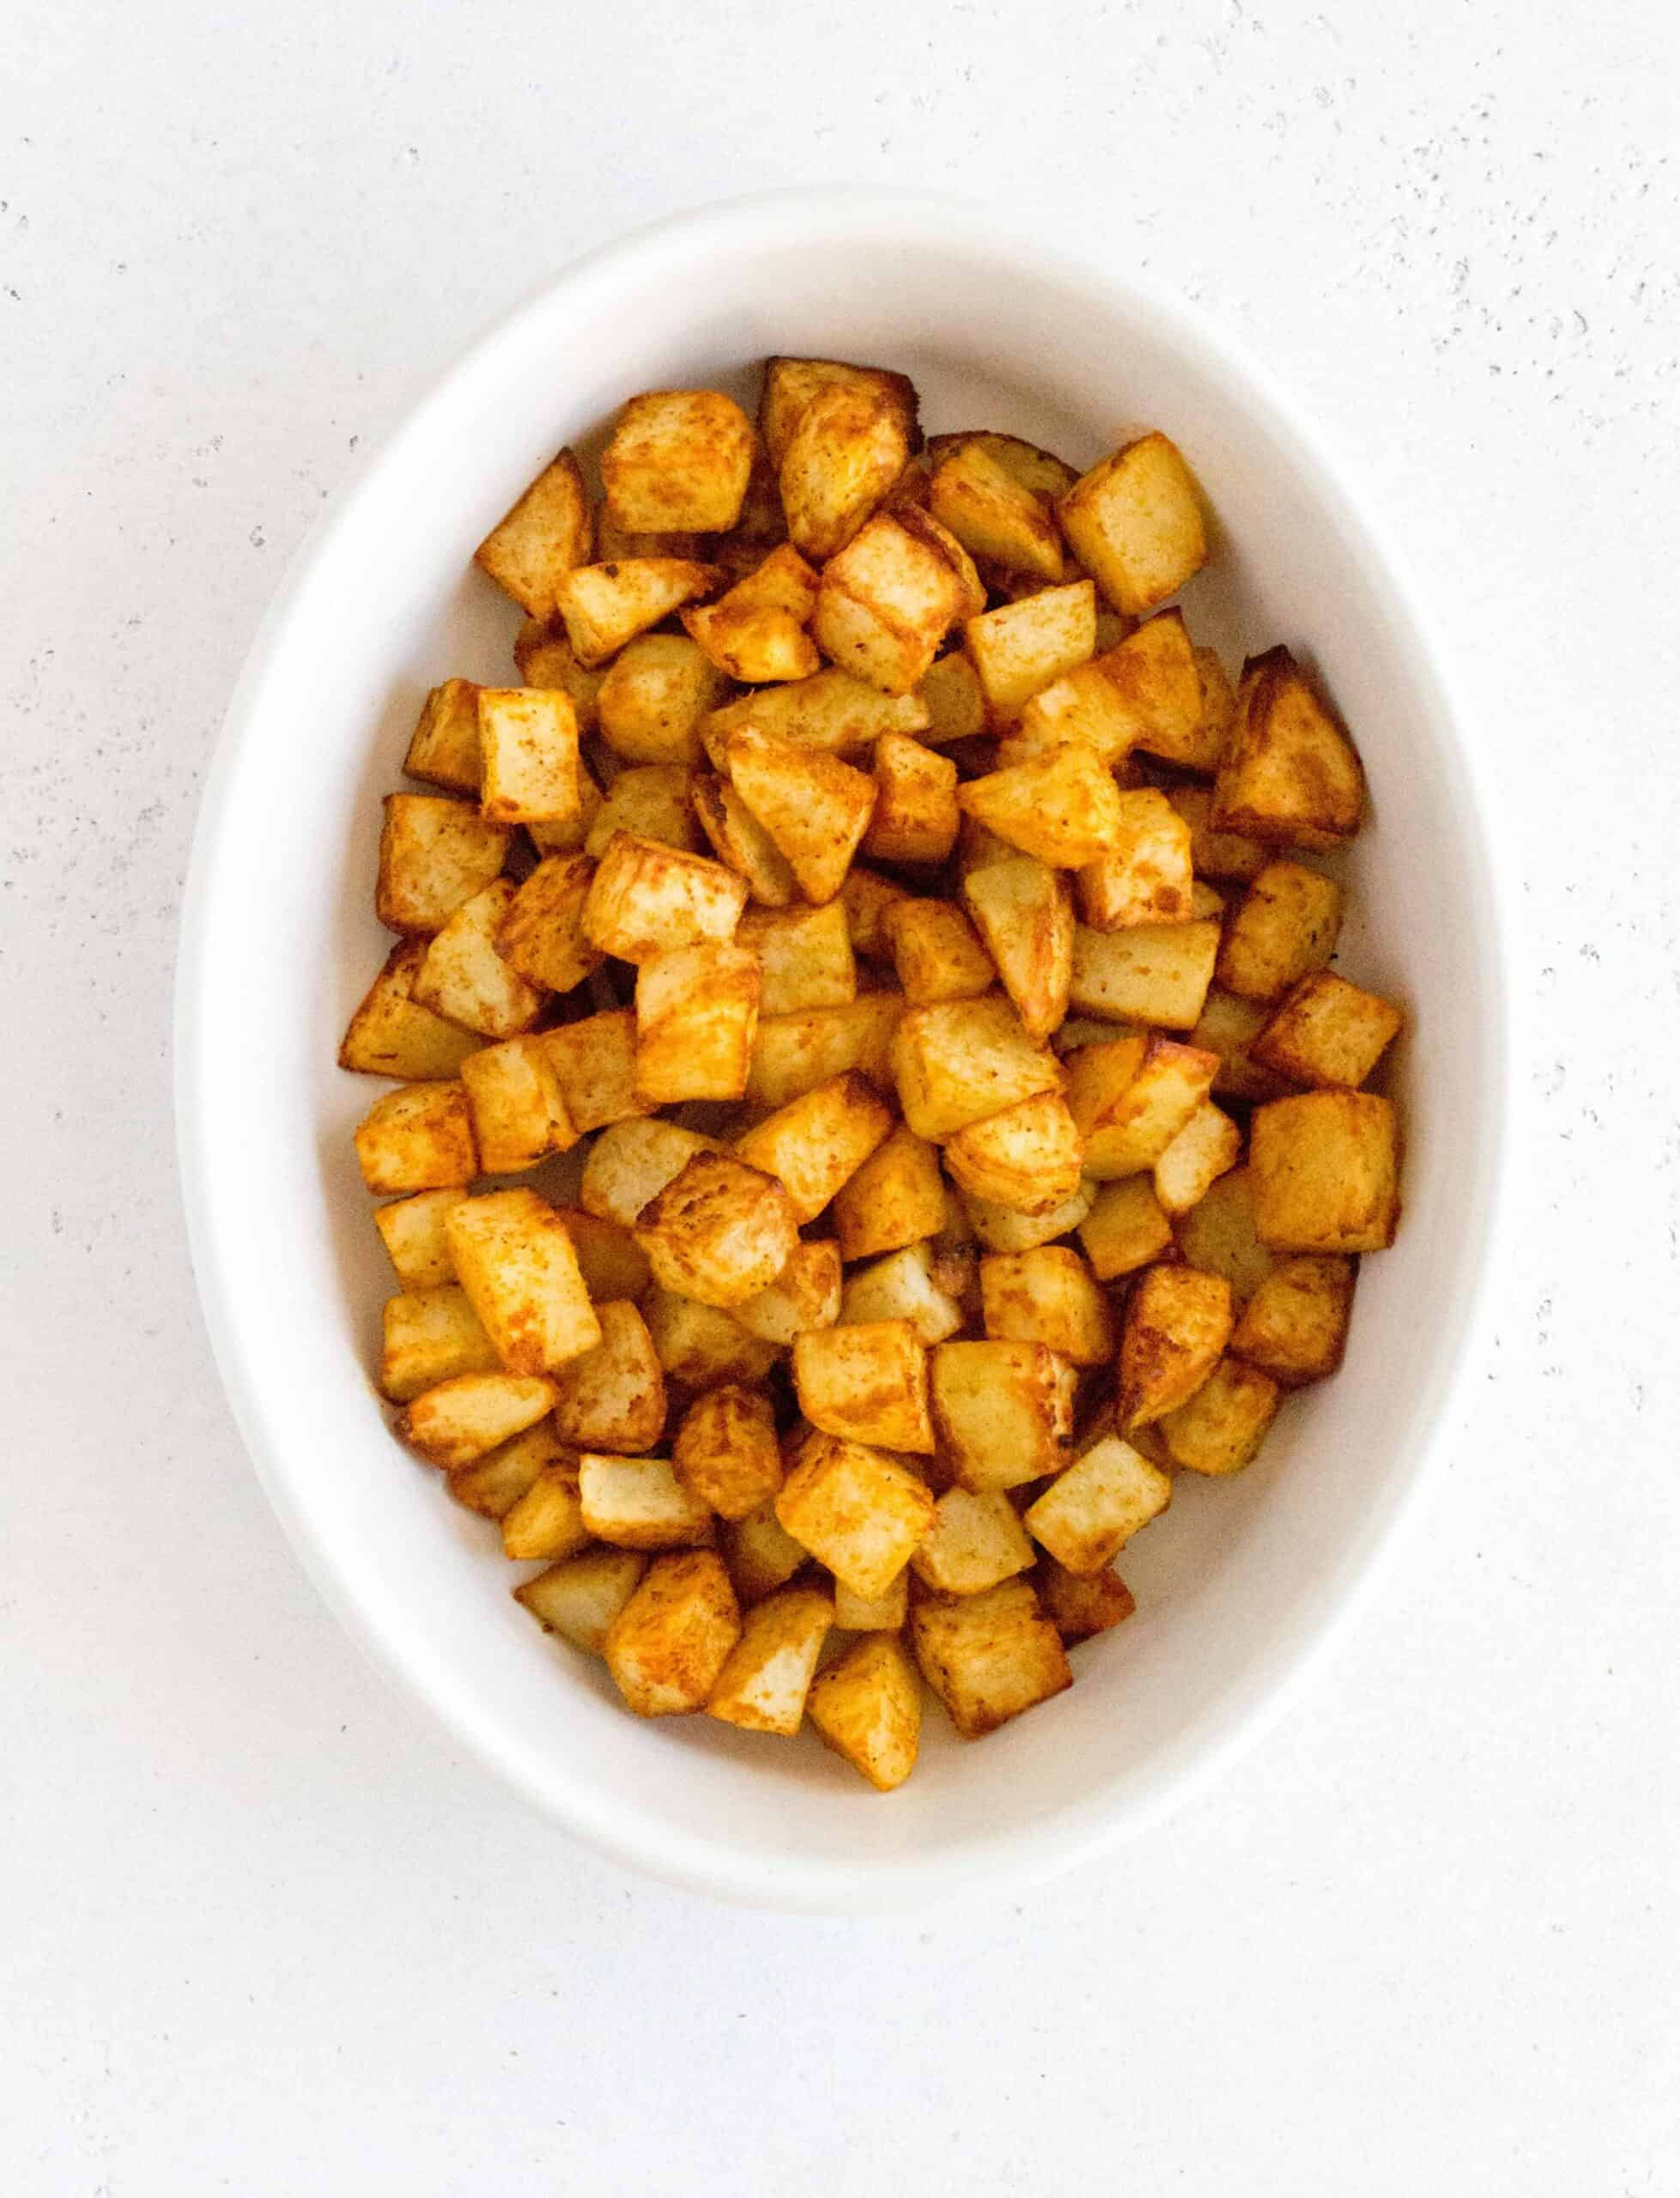 In 30 minutes, you can have this homemade version this diner classic on your table! Make this crispy Air Fryer Breakfast Potatoes recipe today!